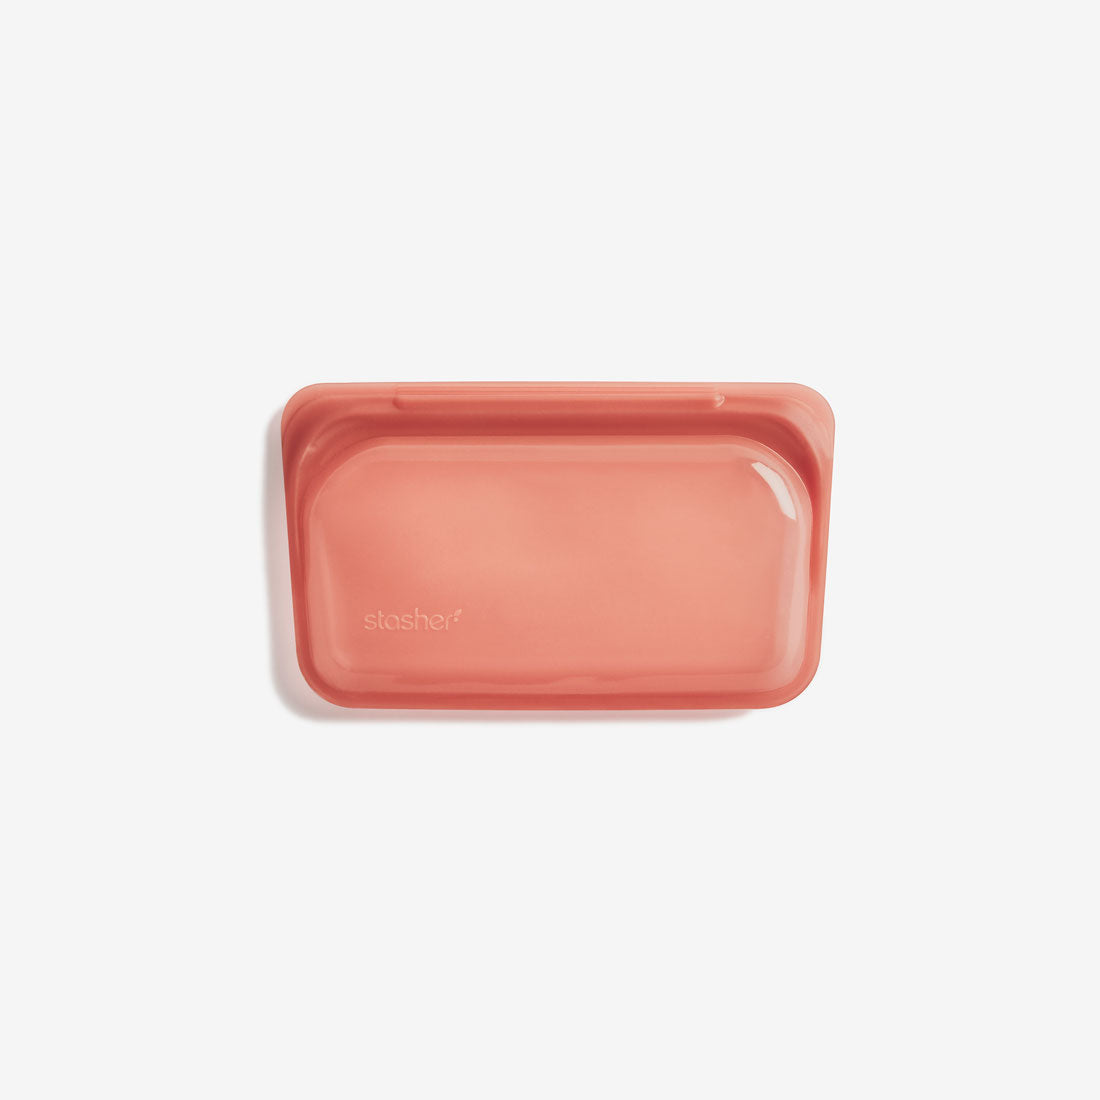 Stasher Silicone SNACK Bag - Terracotta